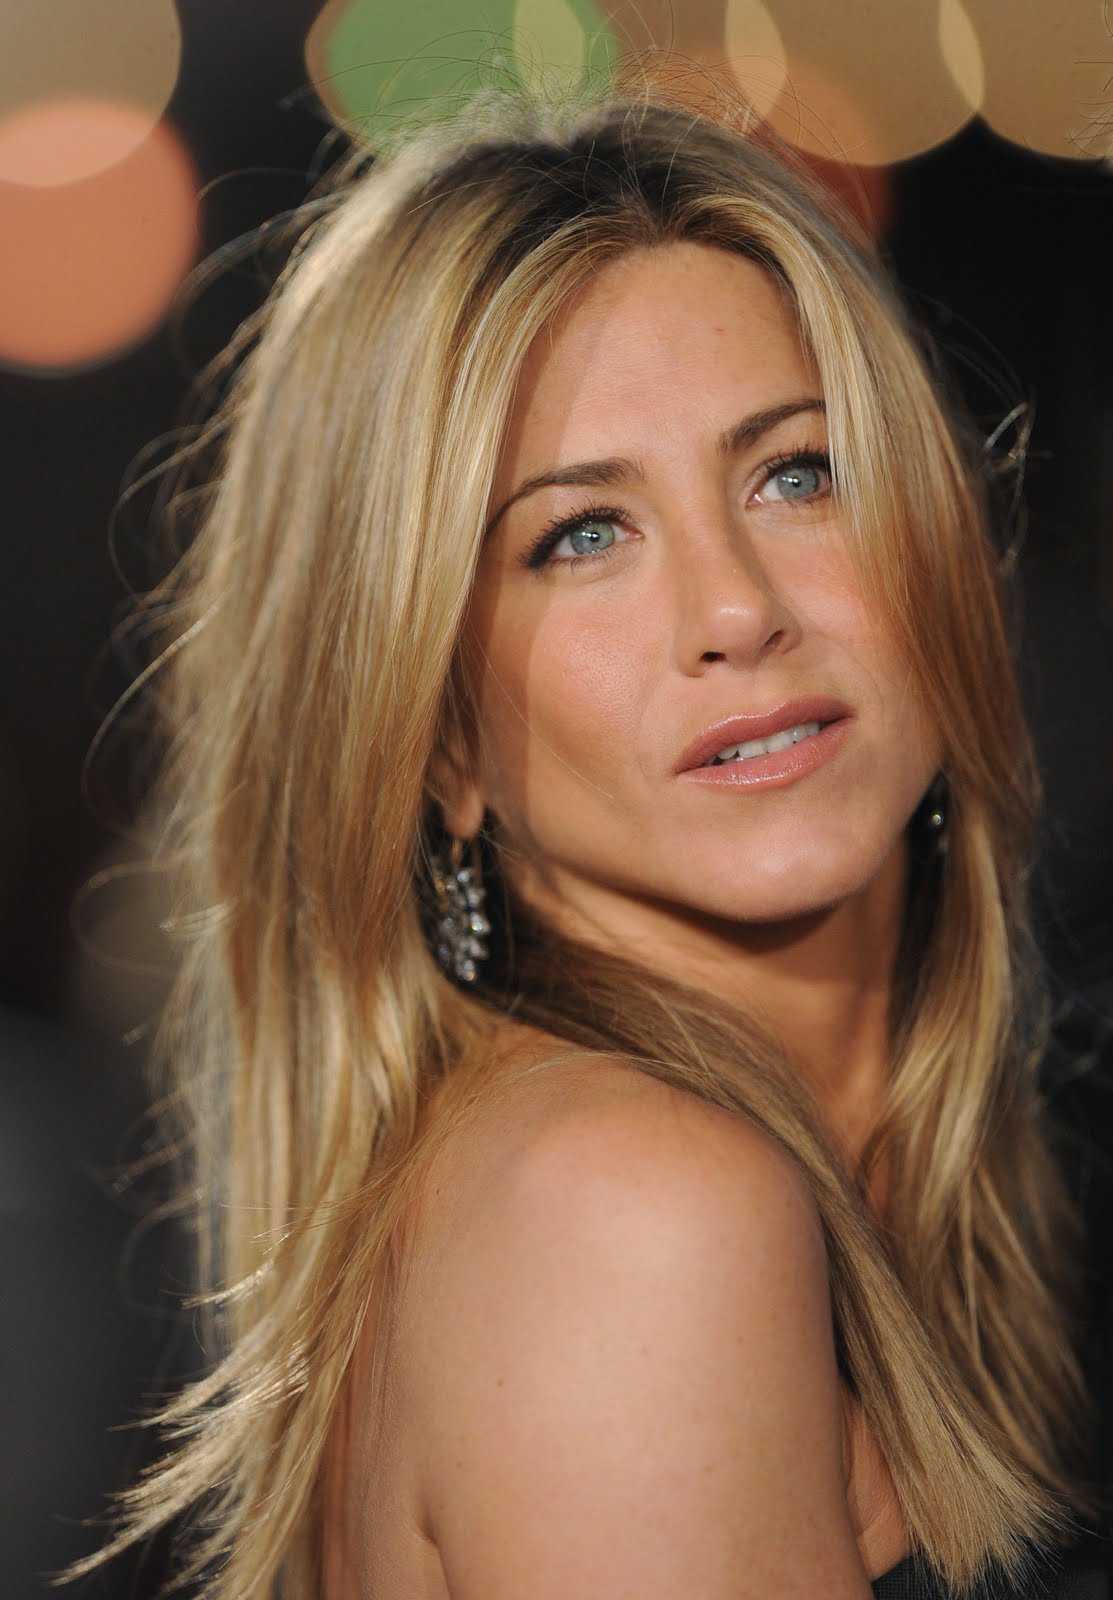 jennifer aniston special pictures 4 film actresses. Black Bedroom Furniture Sets. Home Design Ideas